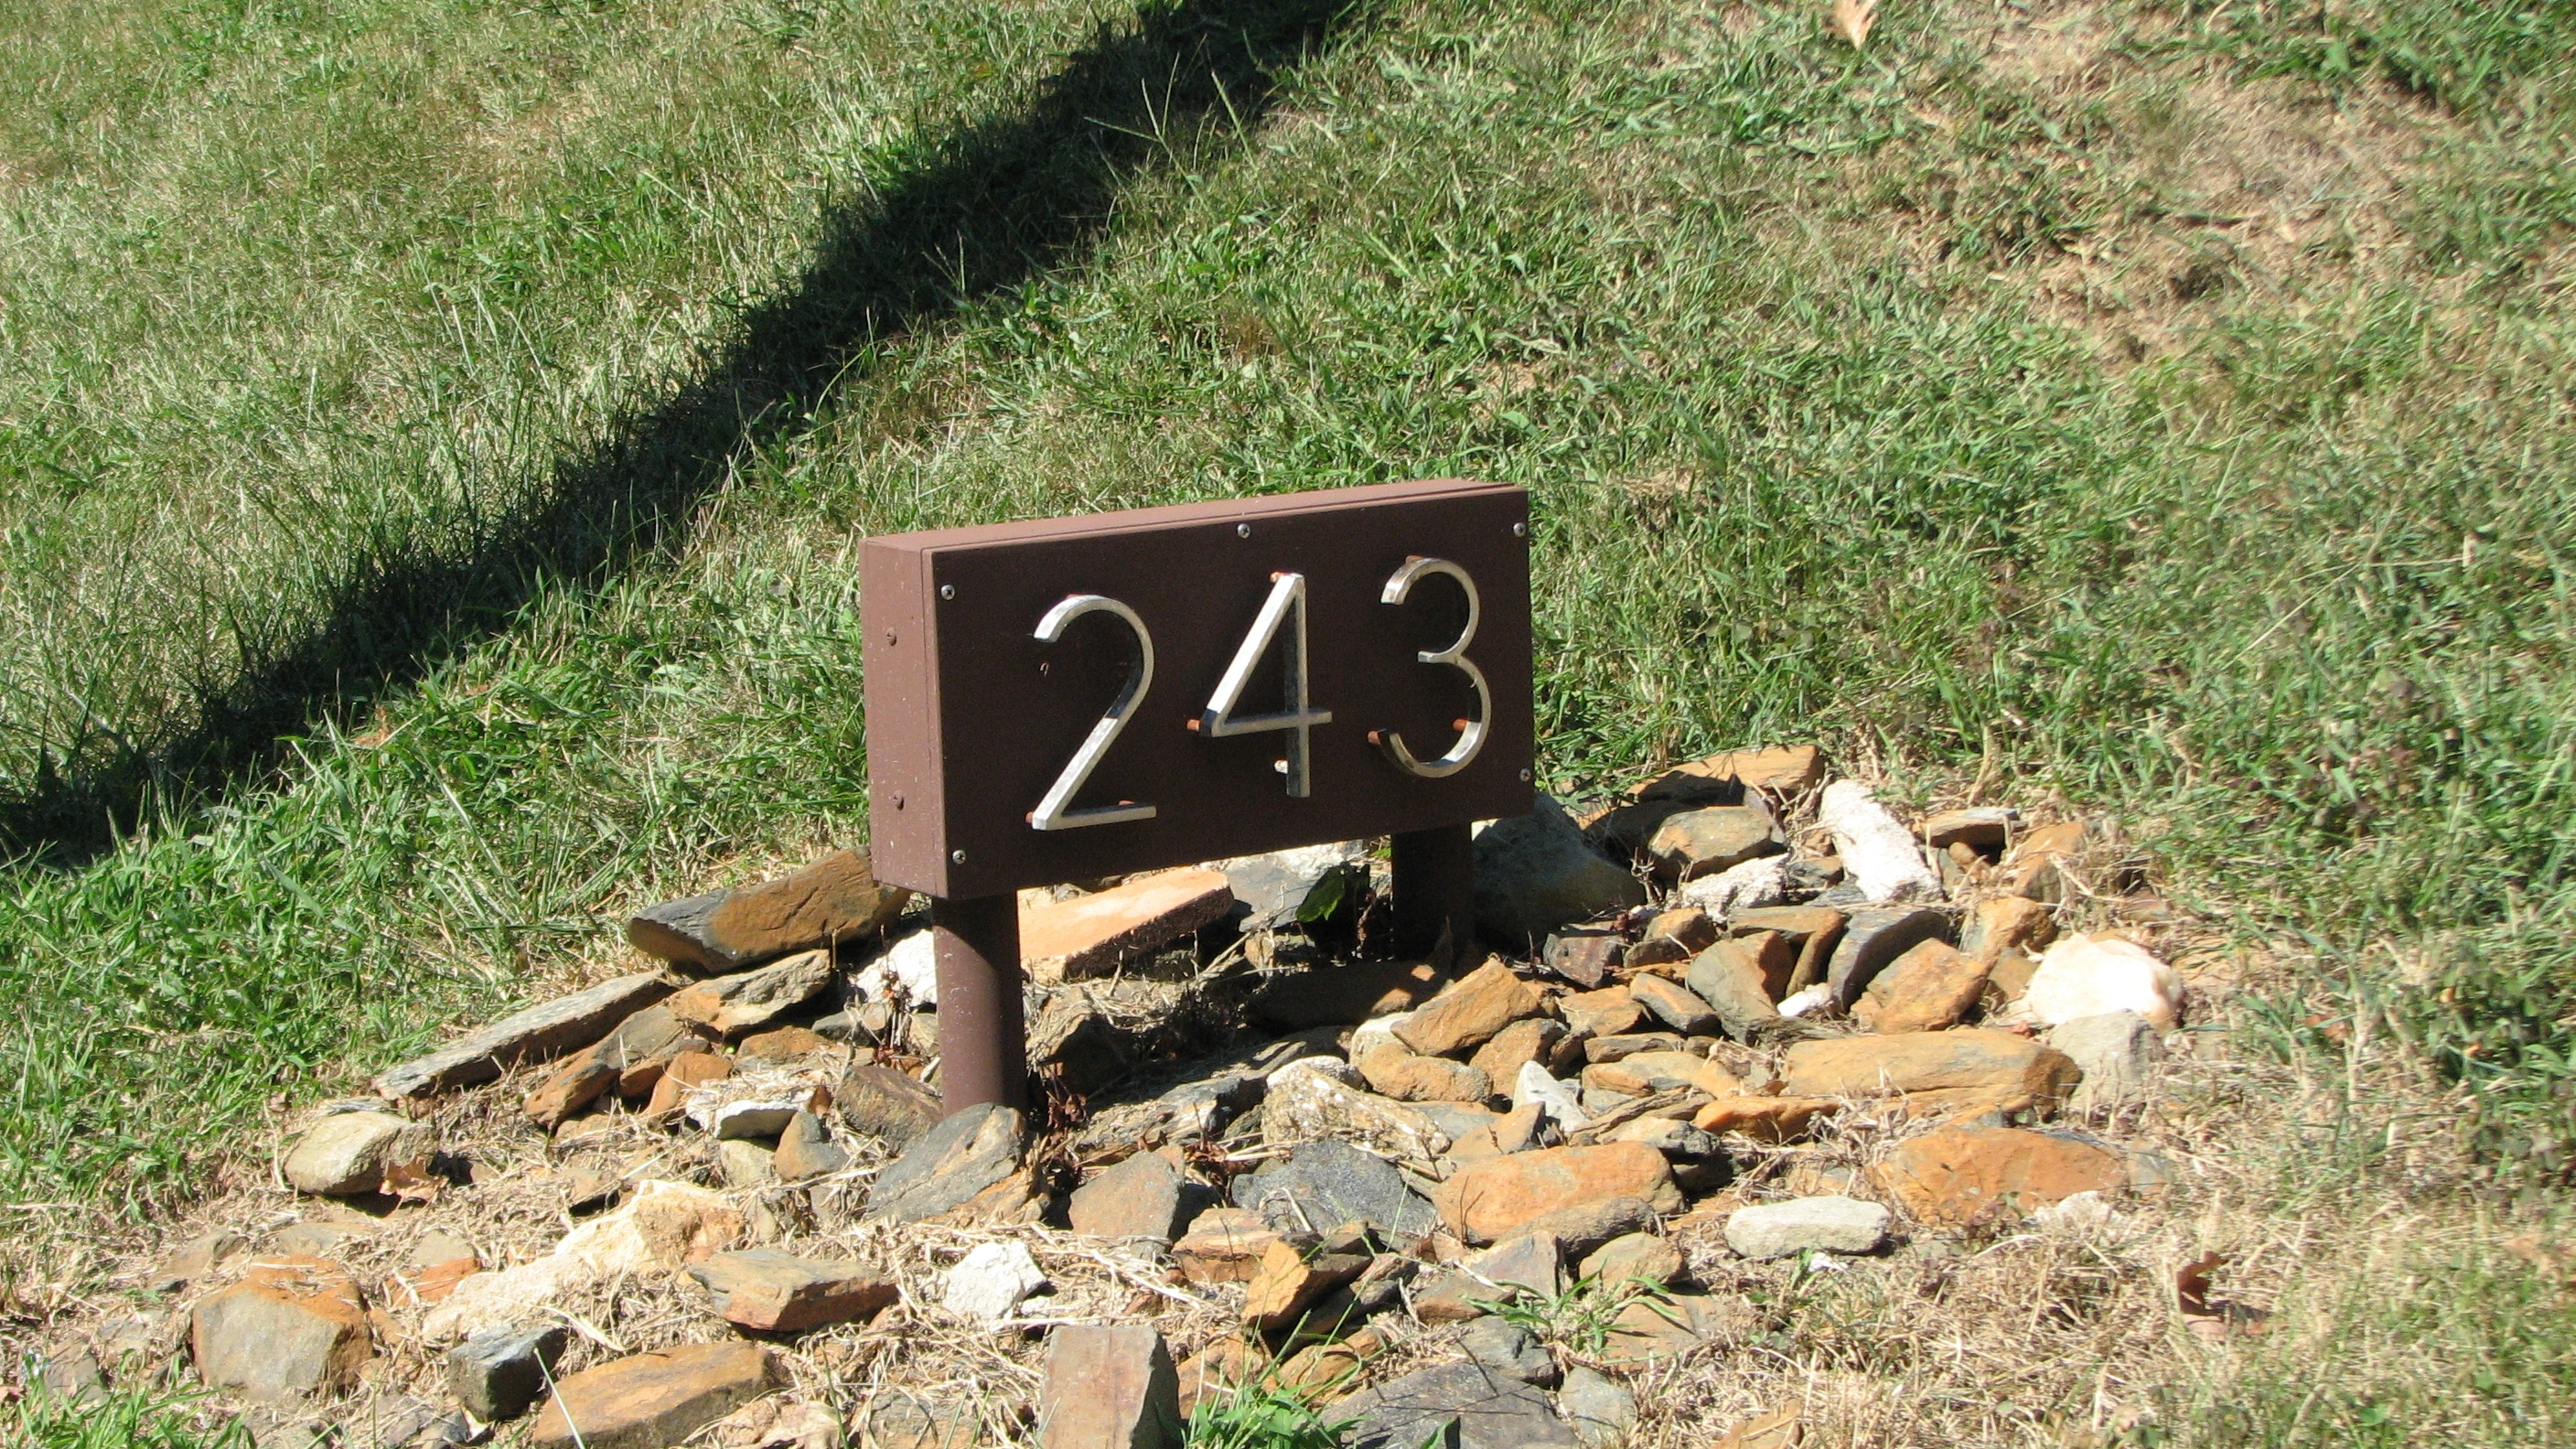 This address sign appears to be an original element of the post-war homes.